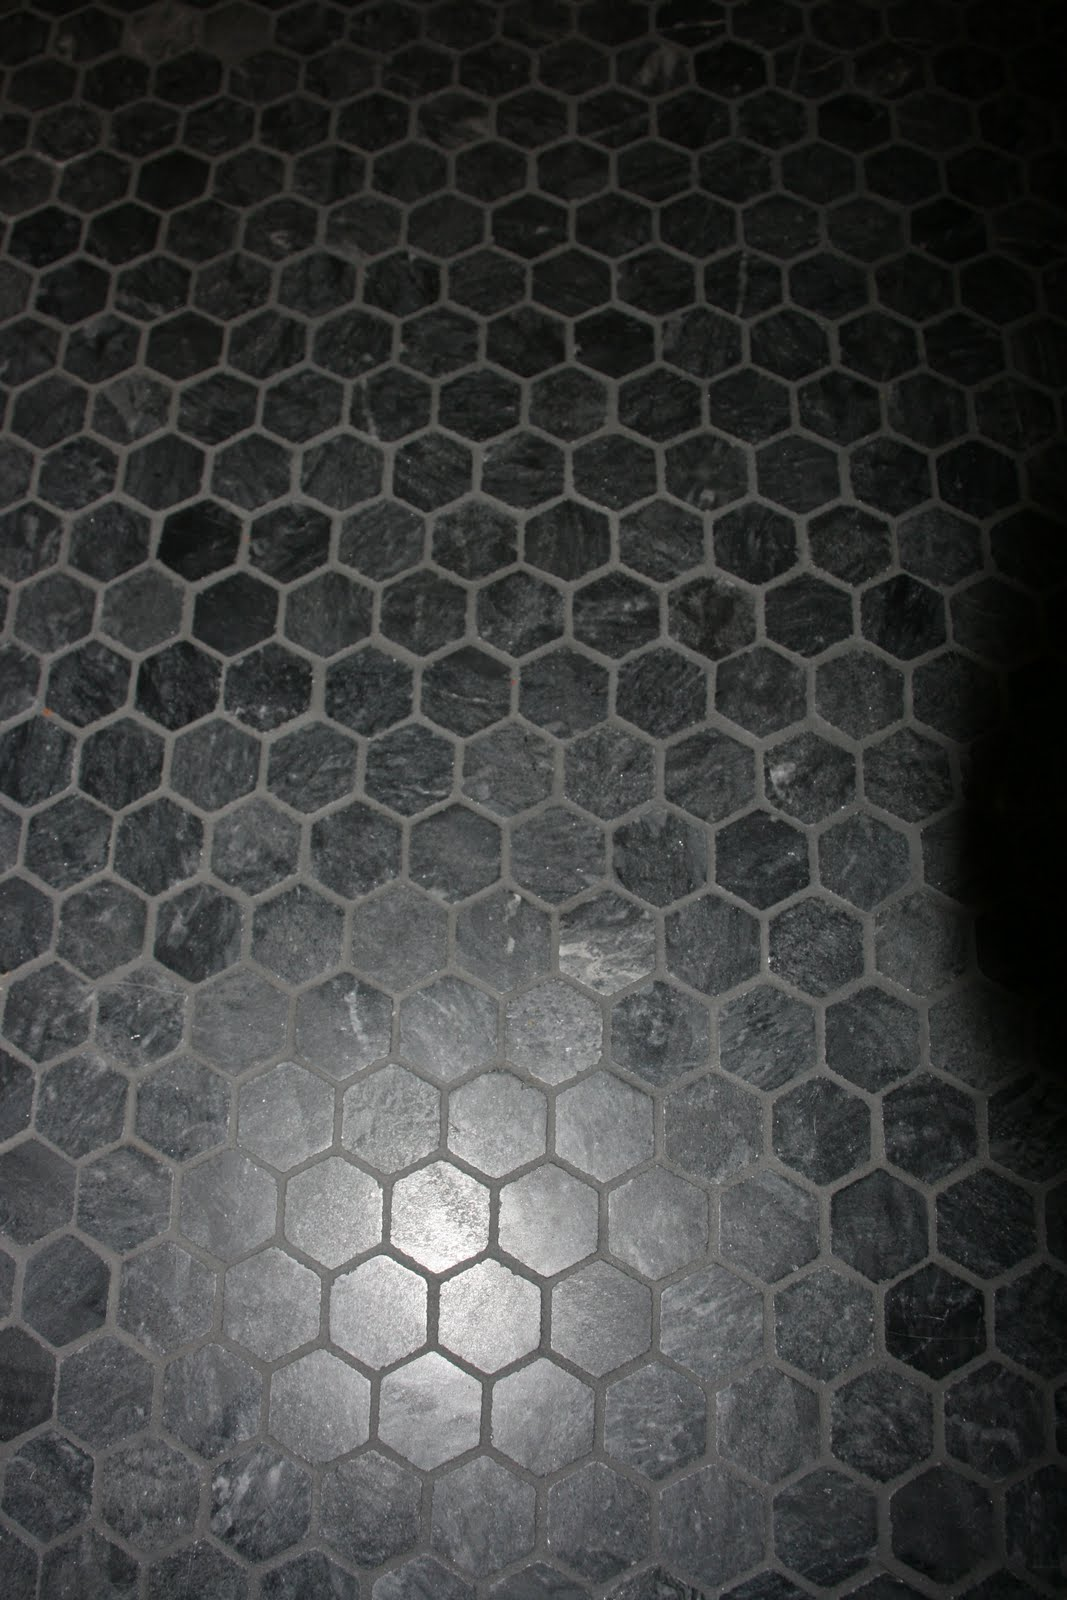 100 Black Marble Flooring Office Worke Mo Mosaic Floor Tile Hexagonal 1